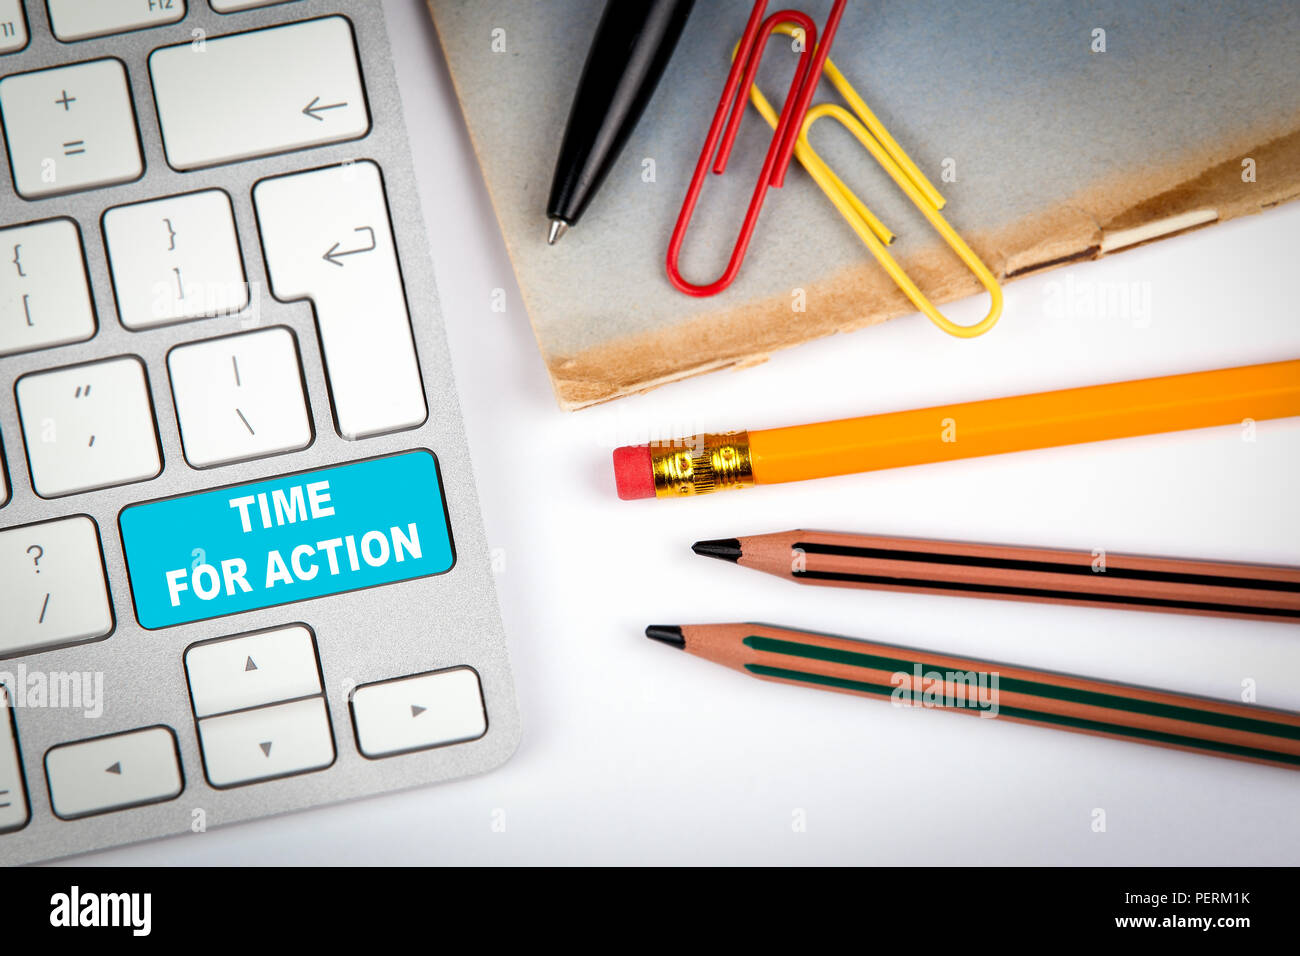 Time for action, Marketing concept - Stock Image